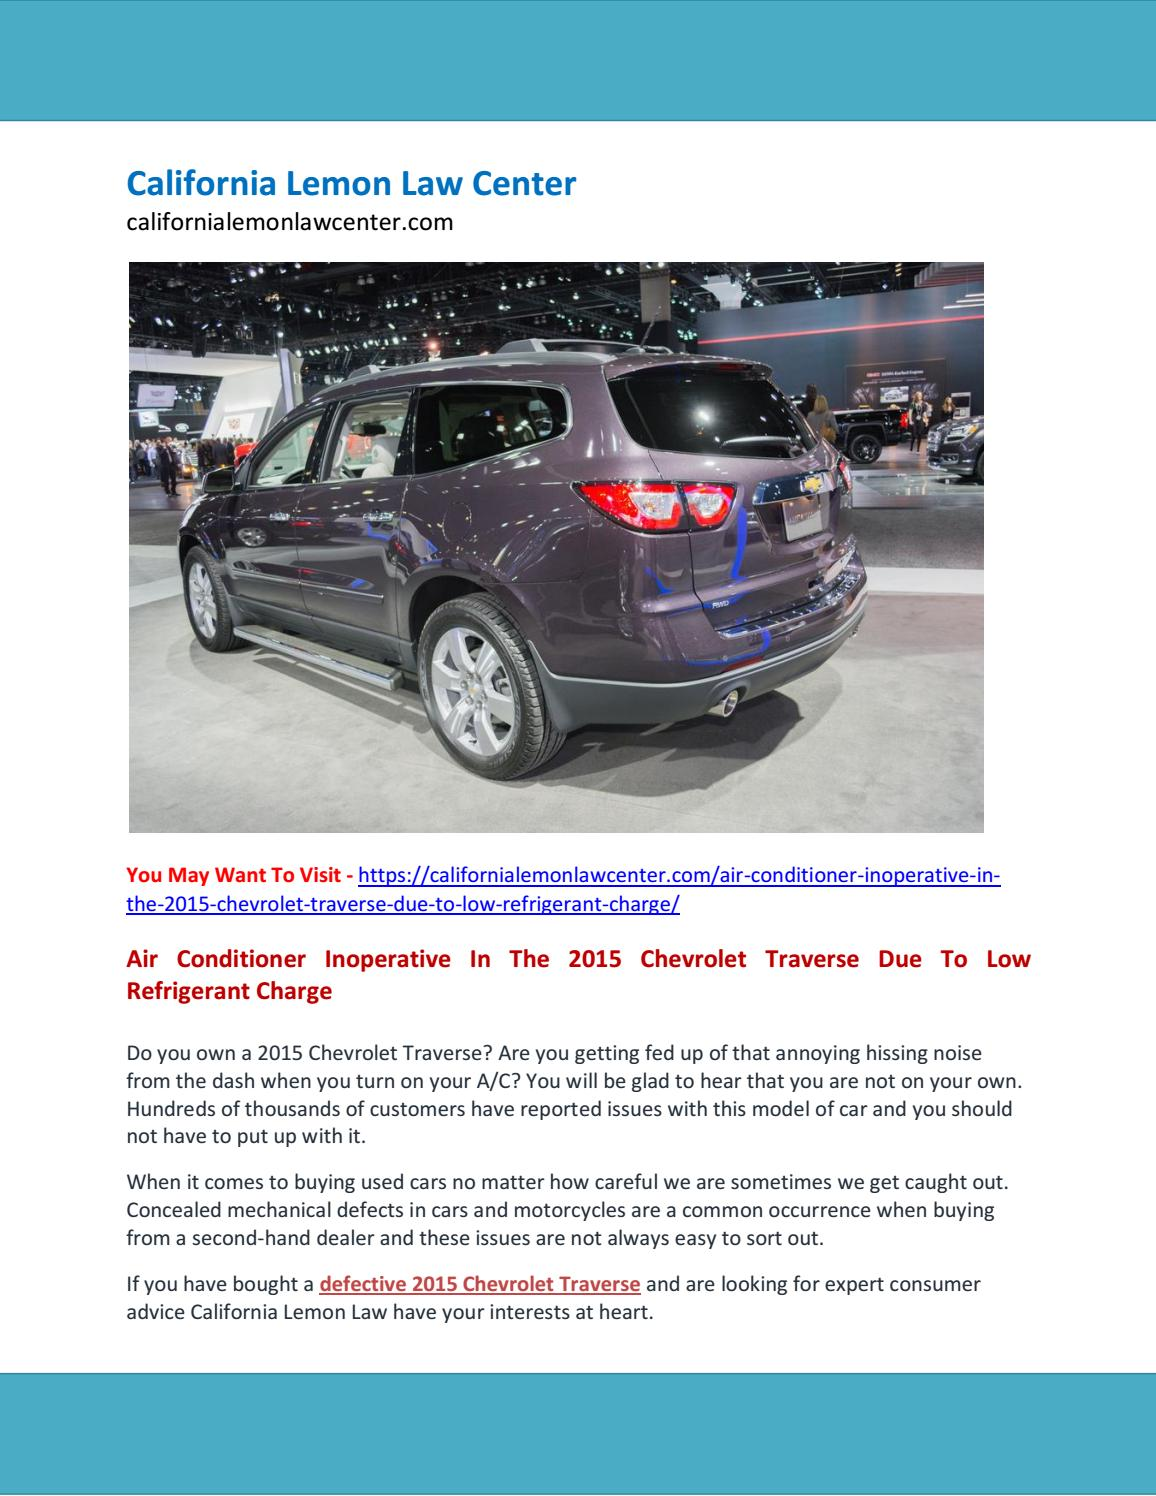 Air Conditioner Inoperative In The 2015 Chevrolet Traverse